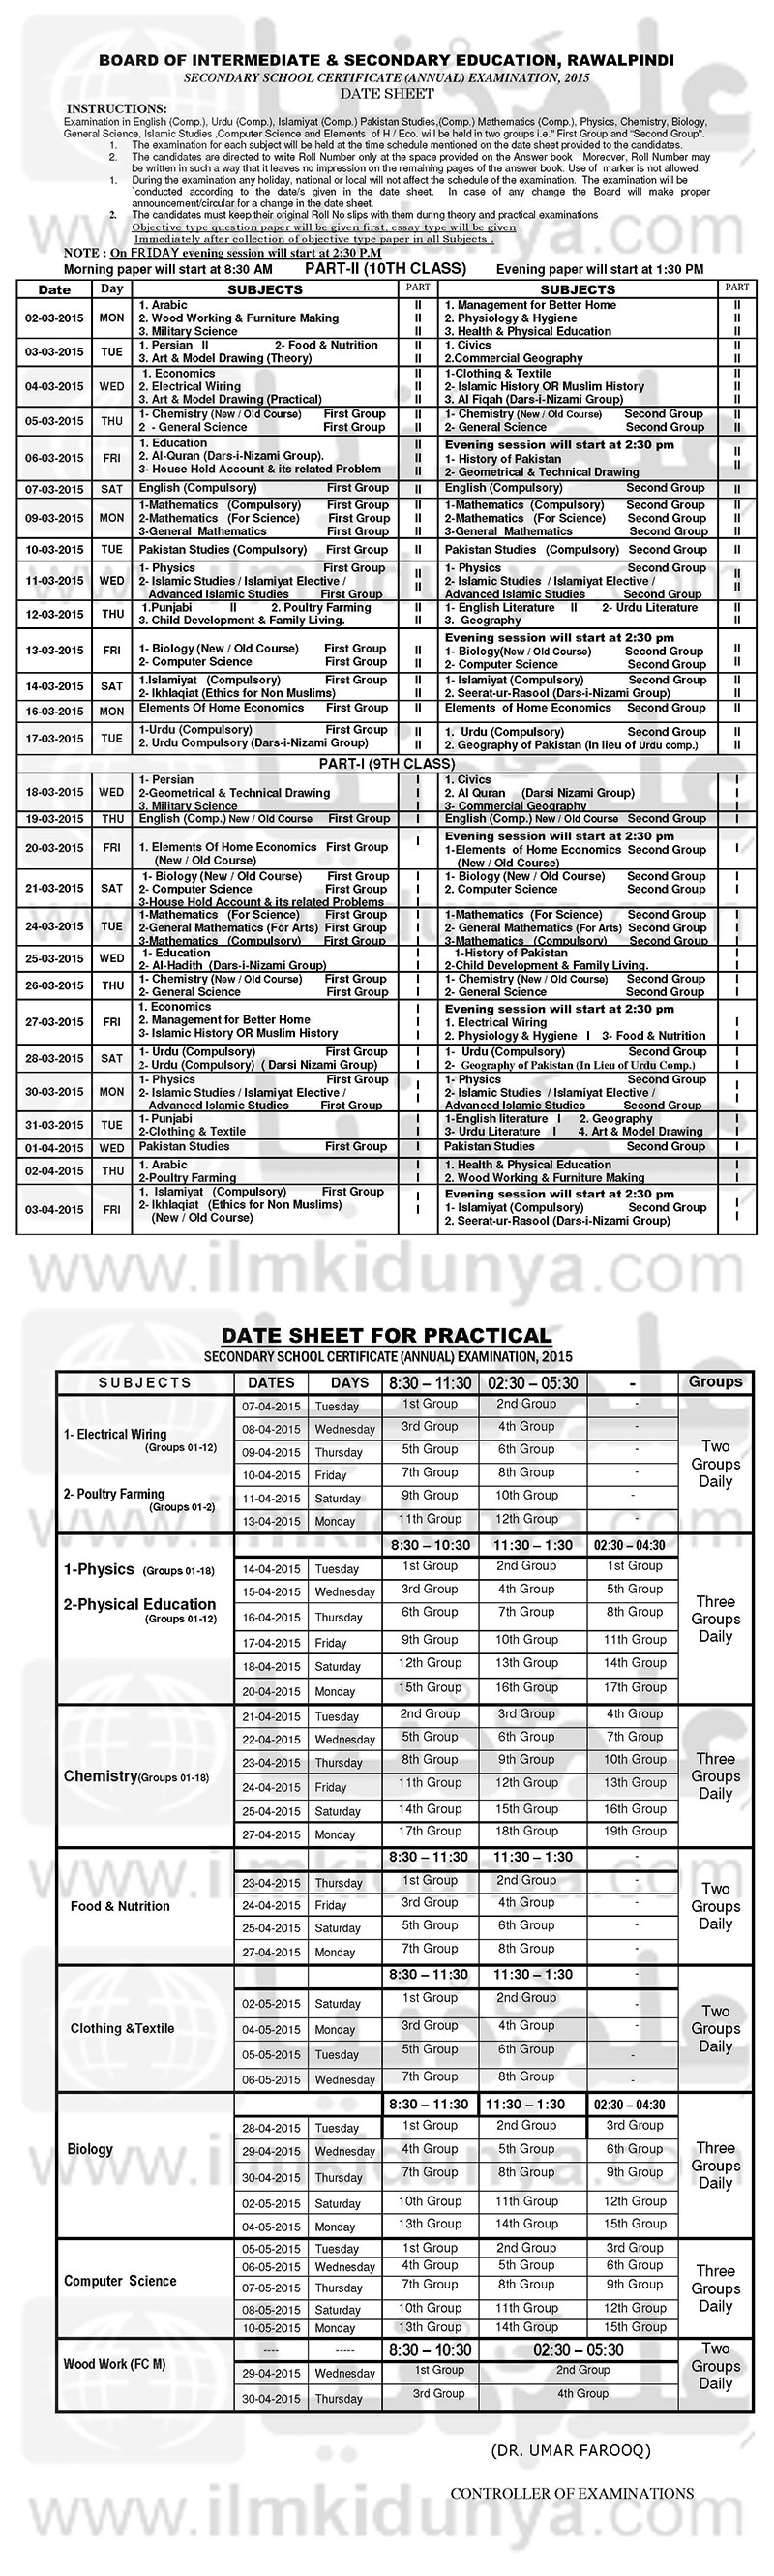 BISE Rawalpindi Board 10th Class Date Sheet 2019